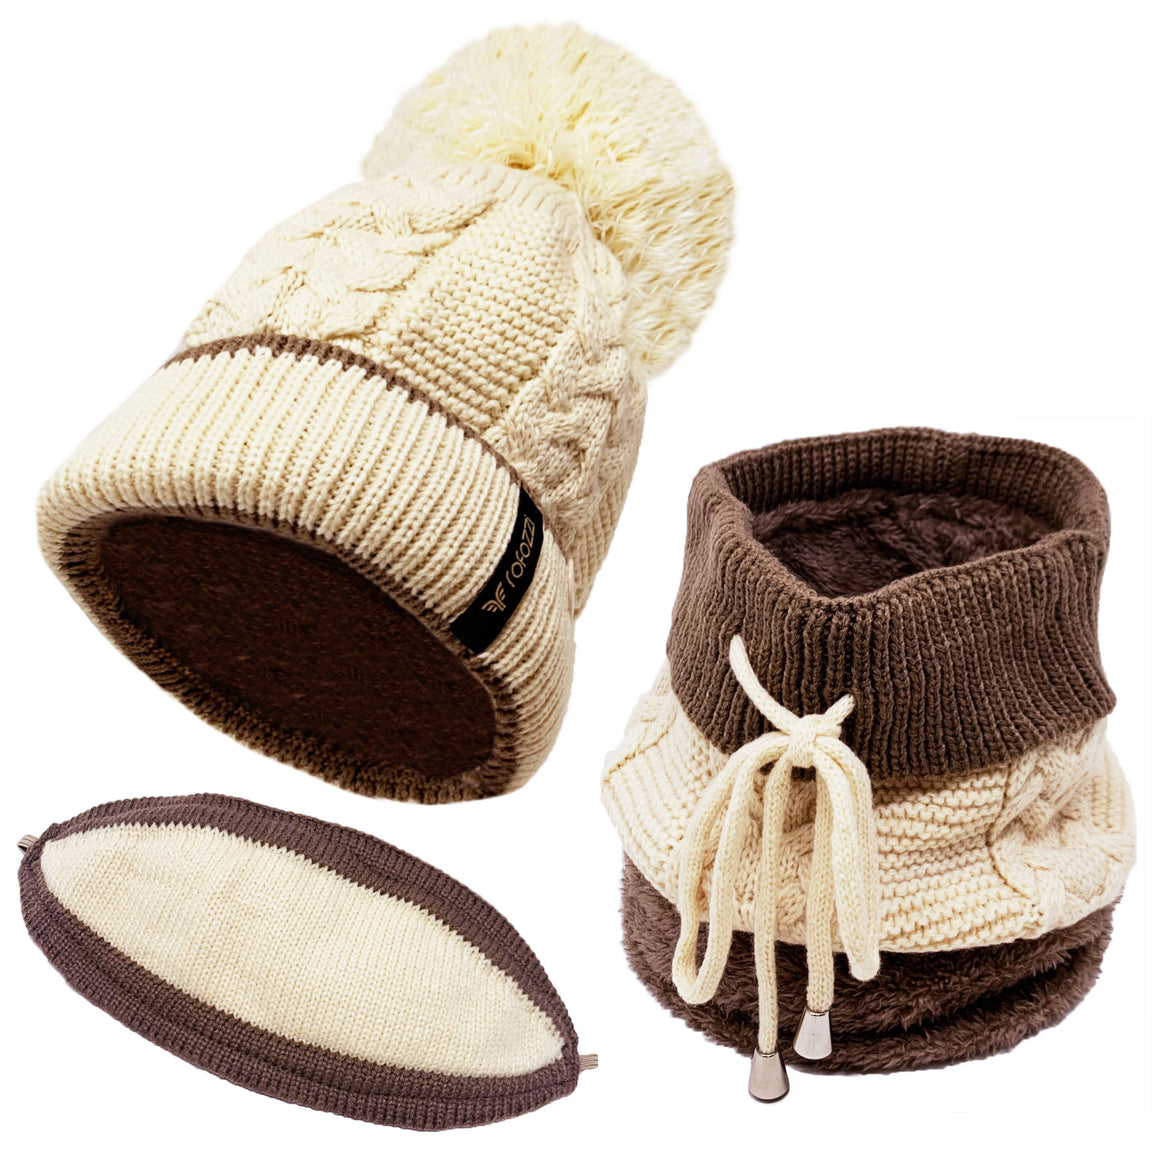 Pompom Beanie Hat Neck Warmer - 3-in-1 - Beige